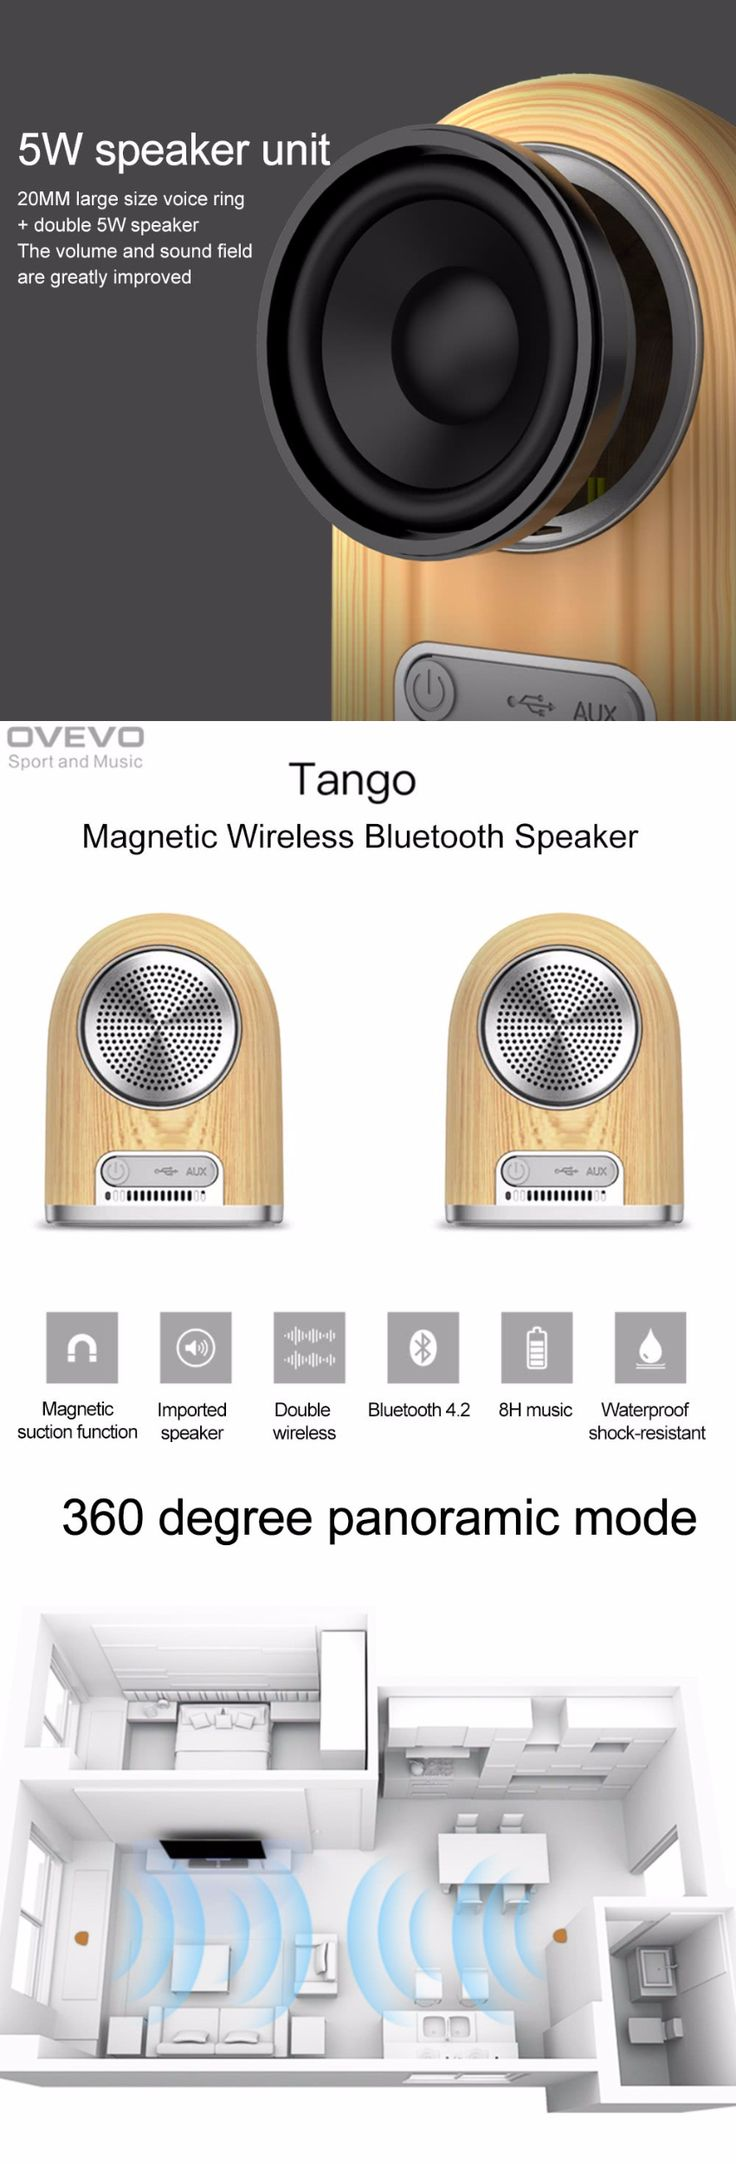 8 hours playtime supplies all-day music enjoyment; IPX5 waterproof, 1.5m high shock-resistant, dust-resistant, lightweight build makes it tough and durable.  Specifications: Model: Tango D10 Bluetooth version: 4.2 Support profiles: AVRCPV/A2DP V/ HFP V/ HSP V Wireless Range: up to 10m Battery: 2 * 3.7V 1000mAh lithium battery Playtime: About 8 hours (medium volume) Charging Time: About 2-3 hours Input: 5V Output power: 2.5W Color: Wood Grain Speaker Size: approx. 8.9 * 6.75 * 6.4cm / 3.50…